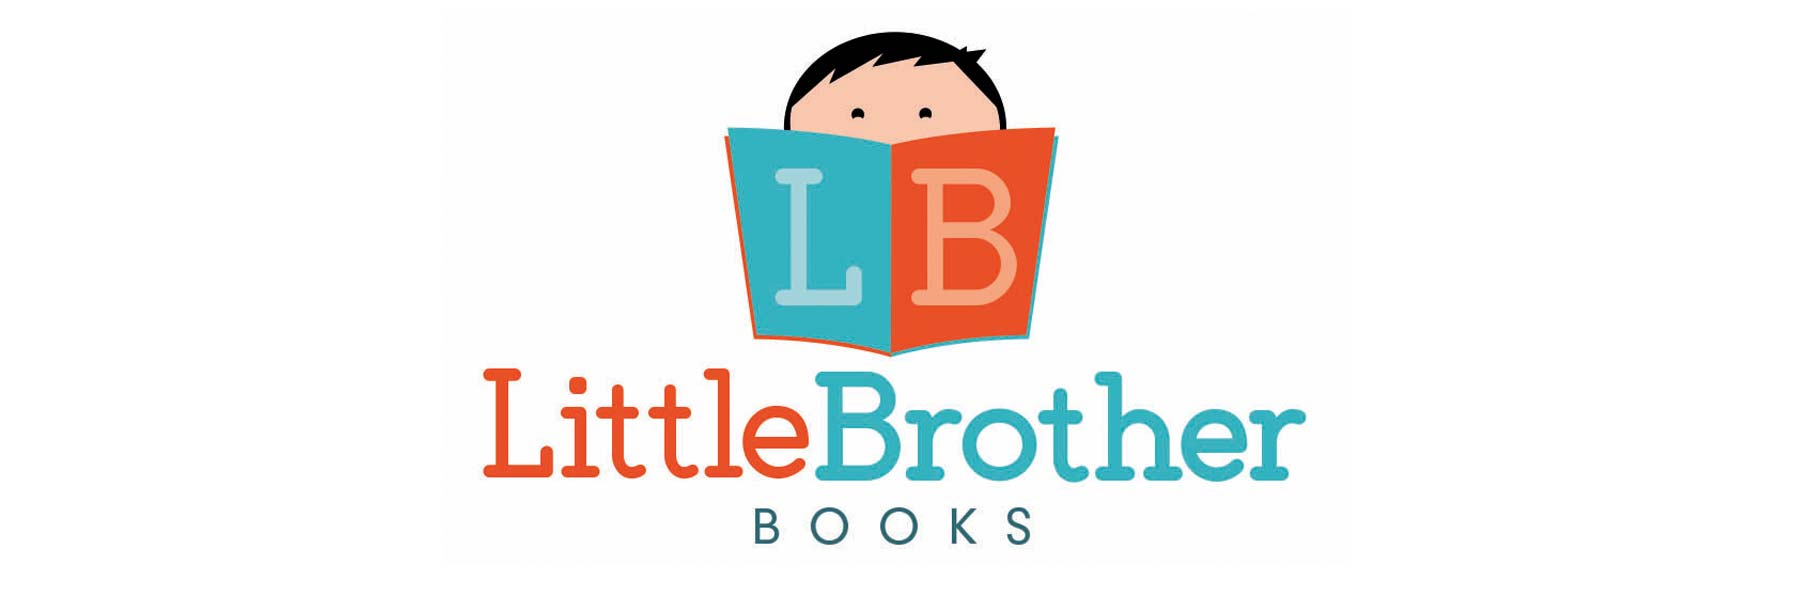 The Light Fund London to Paris Row blogs have kindly been sponsored by Little Brother Books.